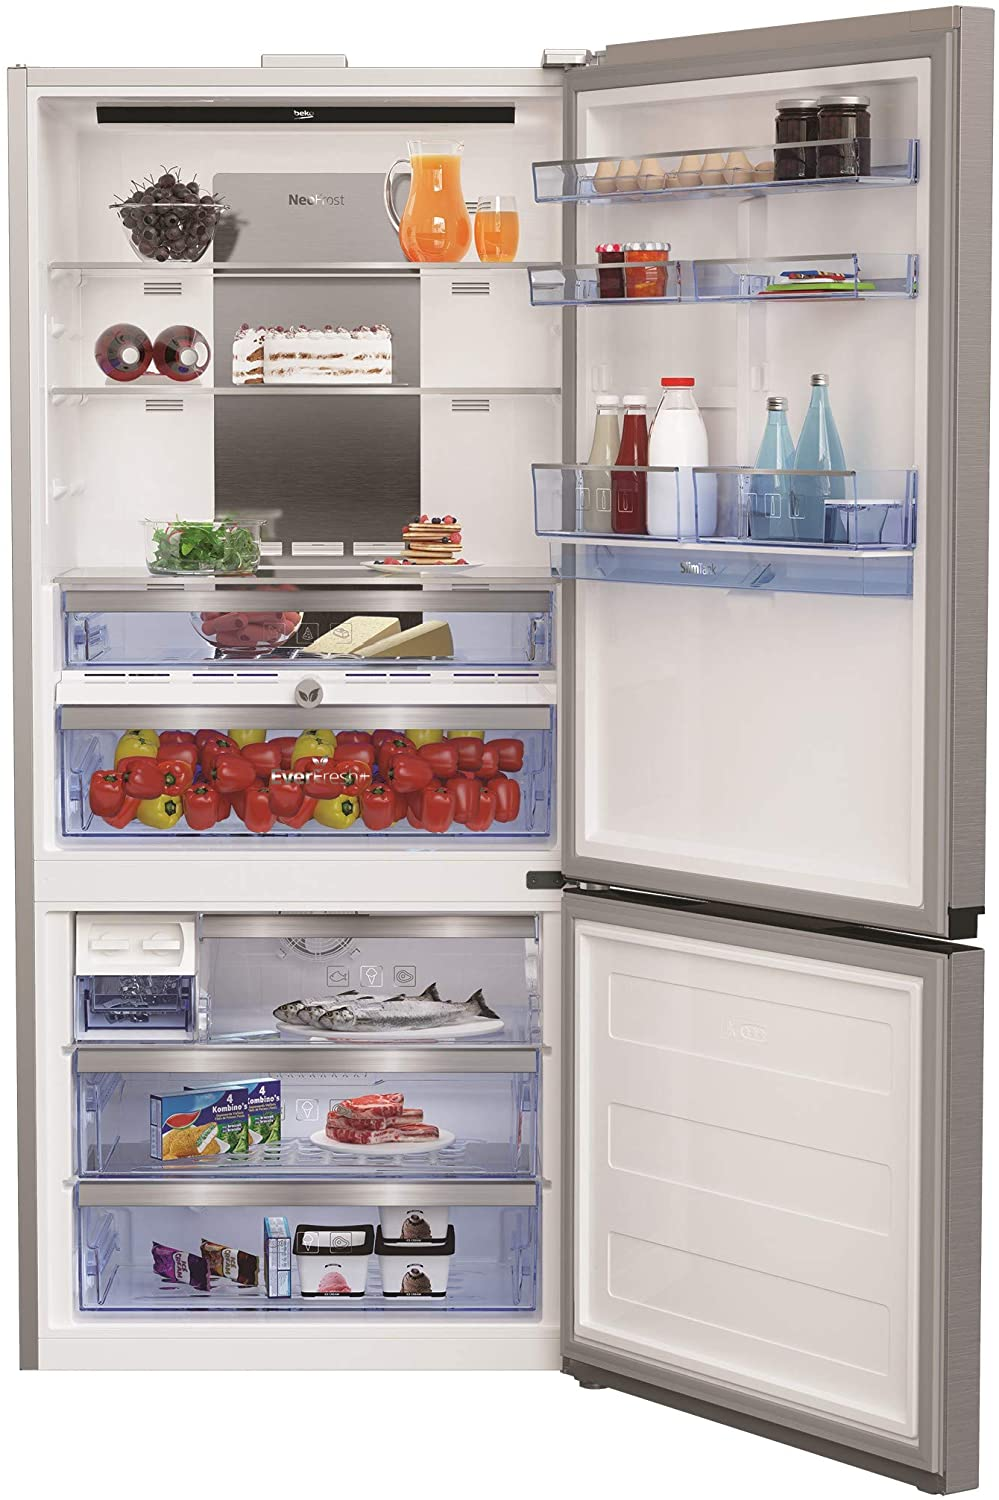 Beko 720 Liter Bottom Freezer Refrıgerator, No Frost, ProSmart Inverter Compressor, Dual Cooling Technology, Made in Turkey RCNE720E20PX